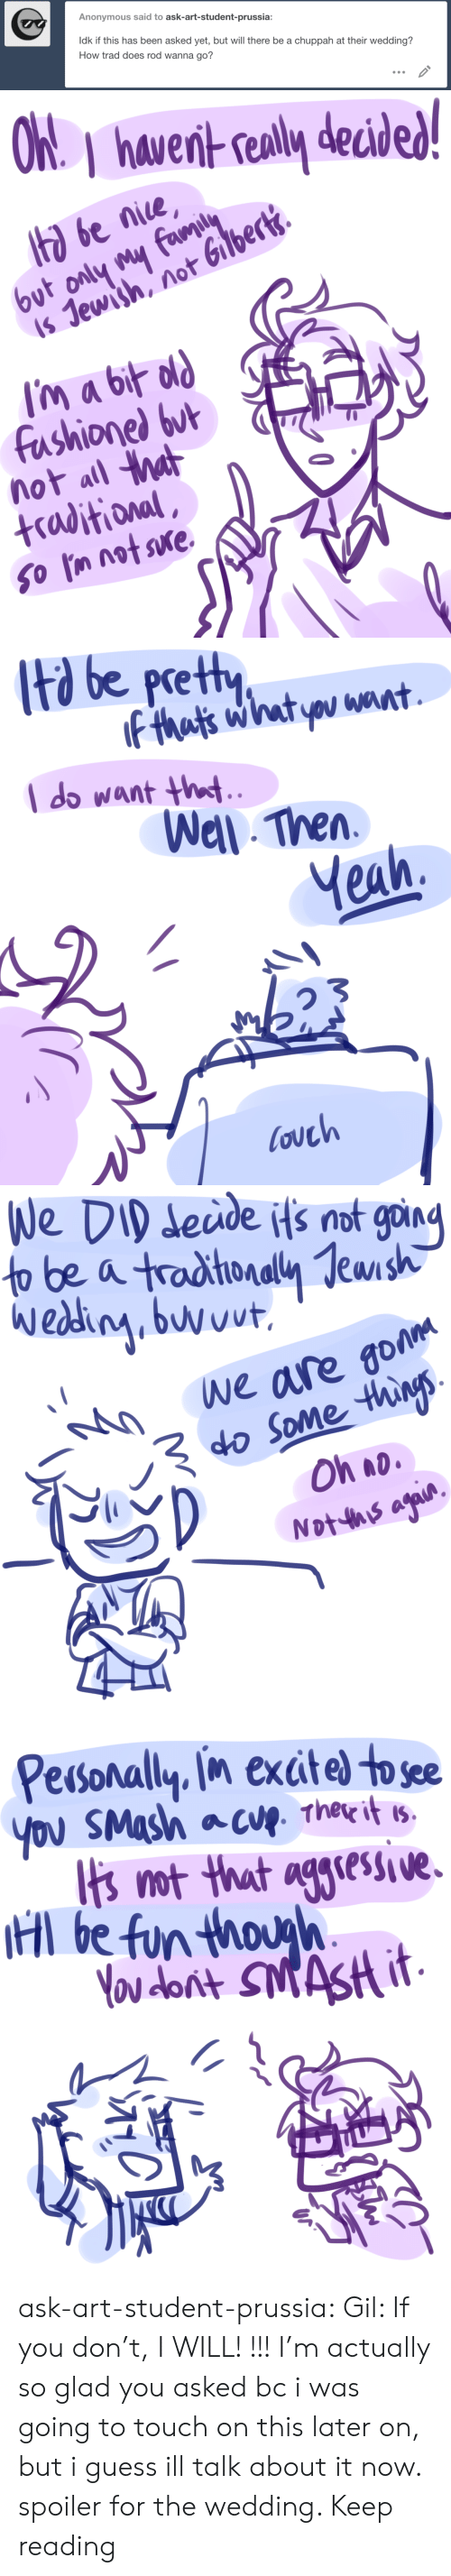 Target, Tumblr, and Yeah: Anonymous said to ask-art-student-prussia:  ldk if this has been asked yet, but will there be a chuppah at their wedding?  How trad does rod wanna go?   hawernt sealy decid  ta be nice  is Jewish, not Gilbert.  fashionel but  not all a  +raditional   td be pretty  l do want ht  Wel Then  Yeah,  ouch   eude Hs not goin  We are go  o Some thins  Oh ao   Pesonally in exctel to see  Ibs ot that aglese.  l be fun thouh ask-art-student-prussia:  Gil: If you don't, I WILL! !!! I'm actually so glad you asked bc i was going to touch on this later on, but i guess ill talk about it now. spoiler for the wedding. Keep reading